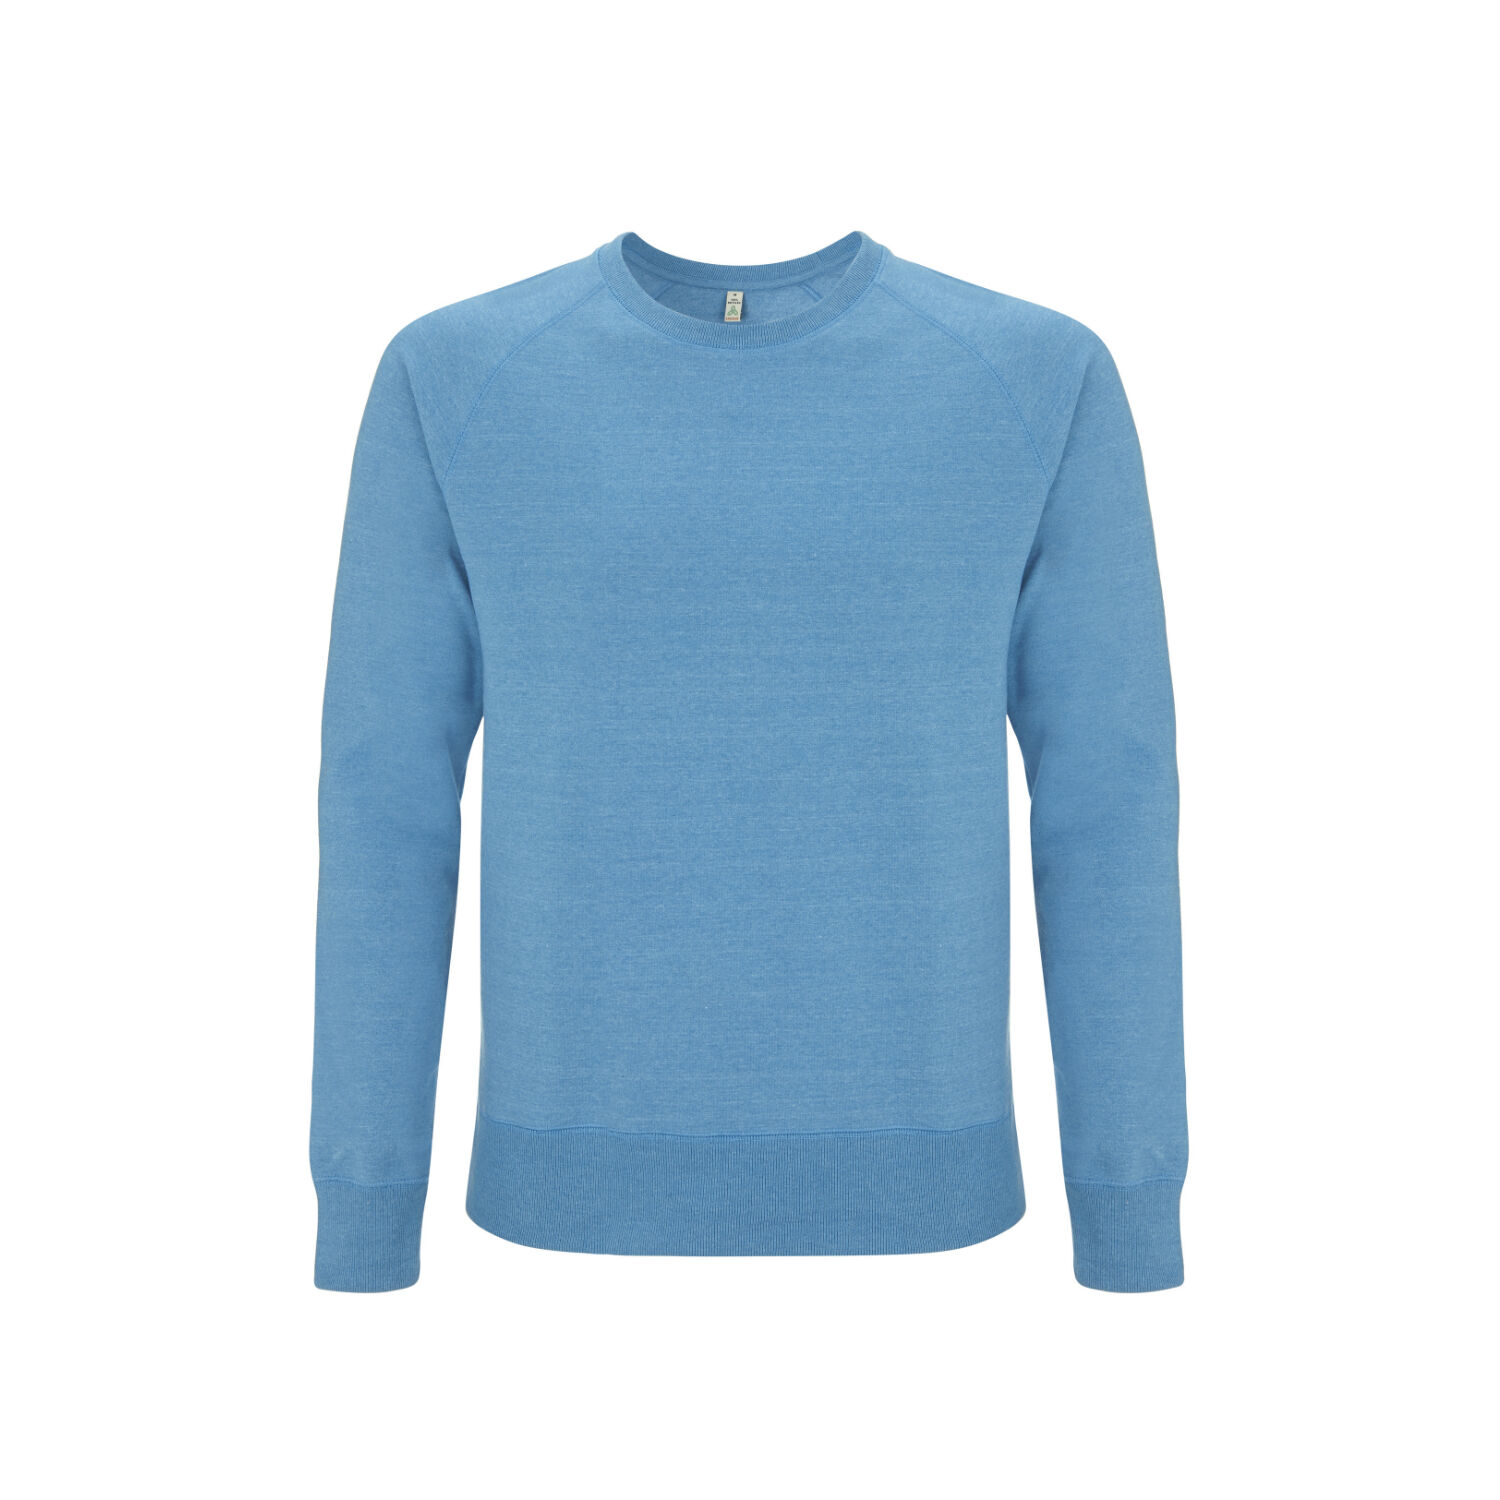 Unisex Salvage Organic Sweatshirt (blue)